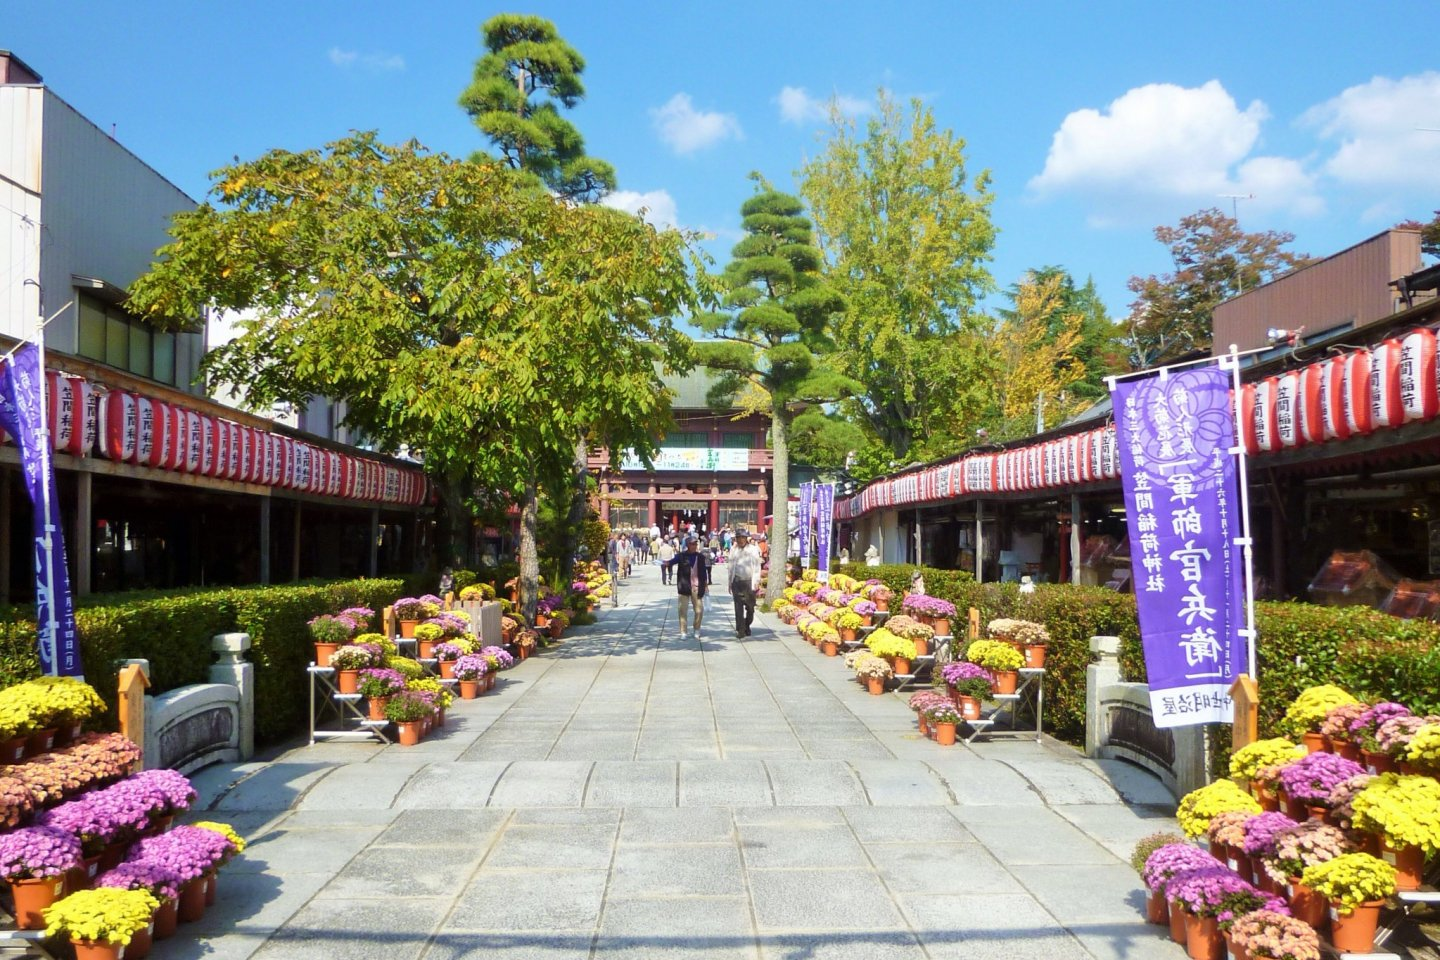 The front entrance to the shrine is lined with souvenir shops.